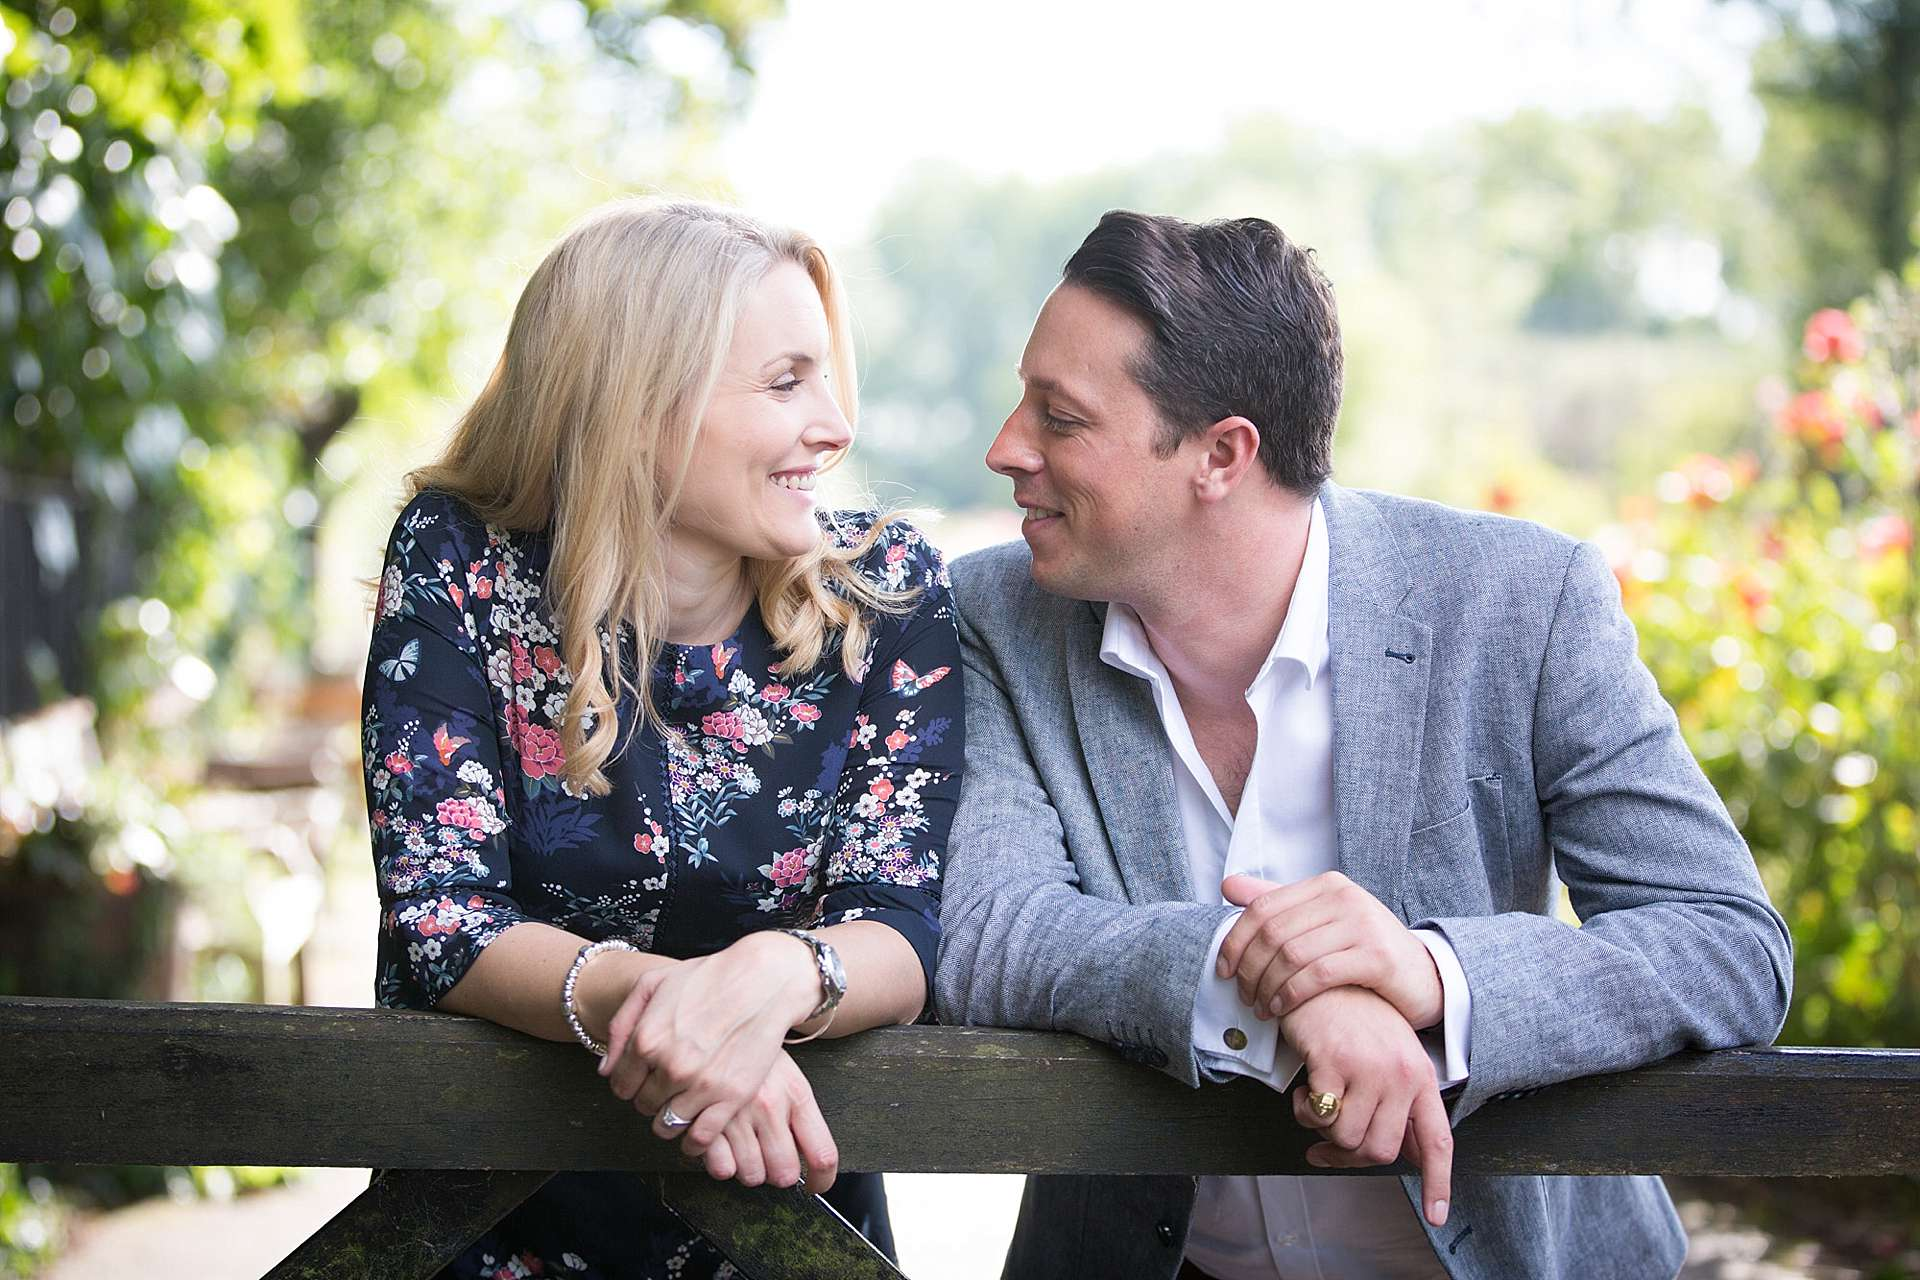 Sonning pre-wedding shoot